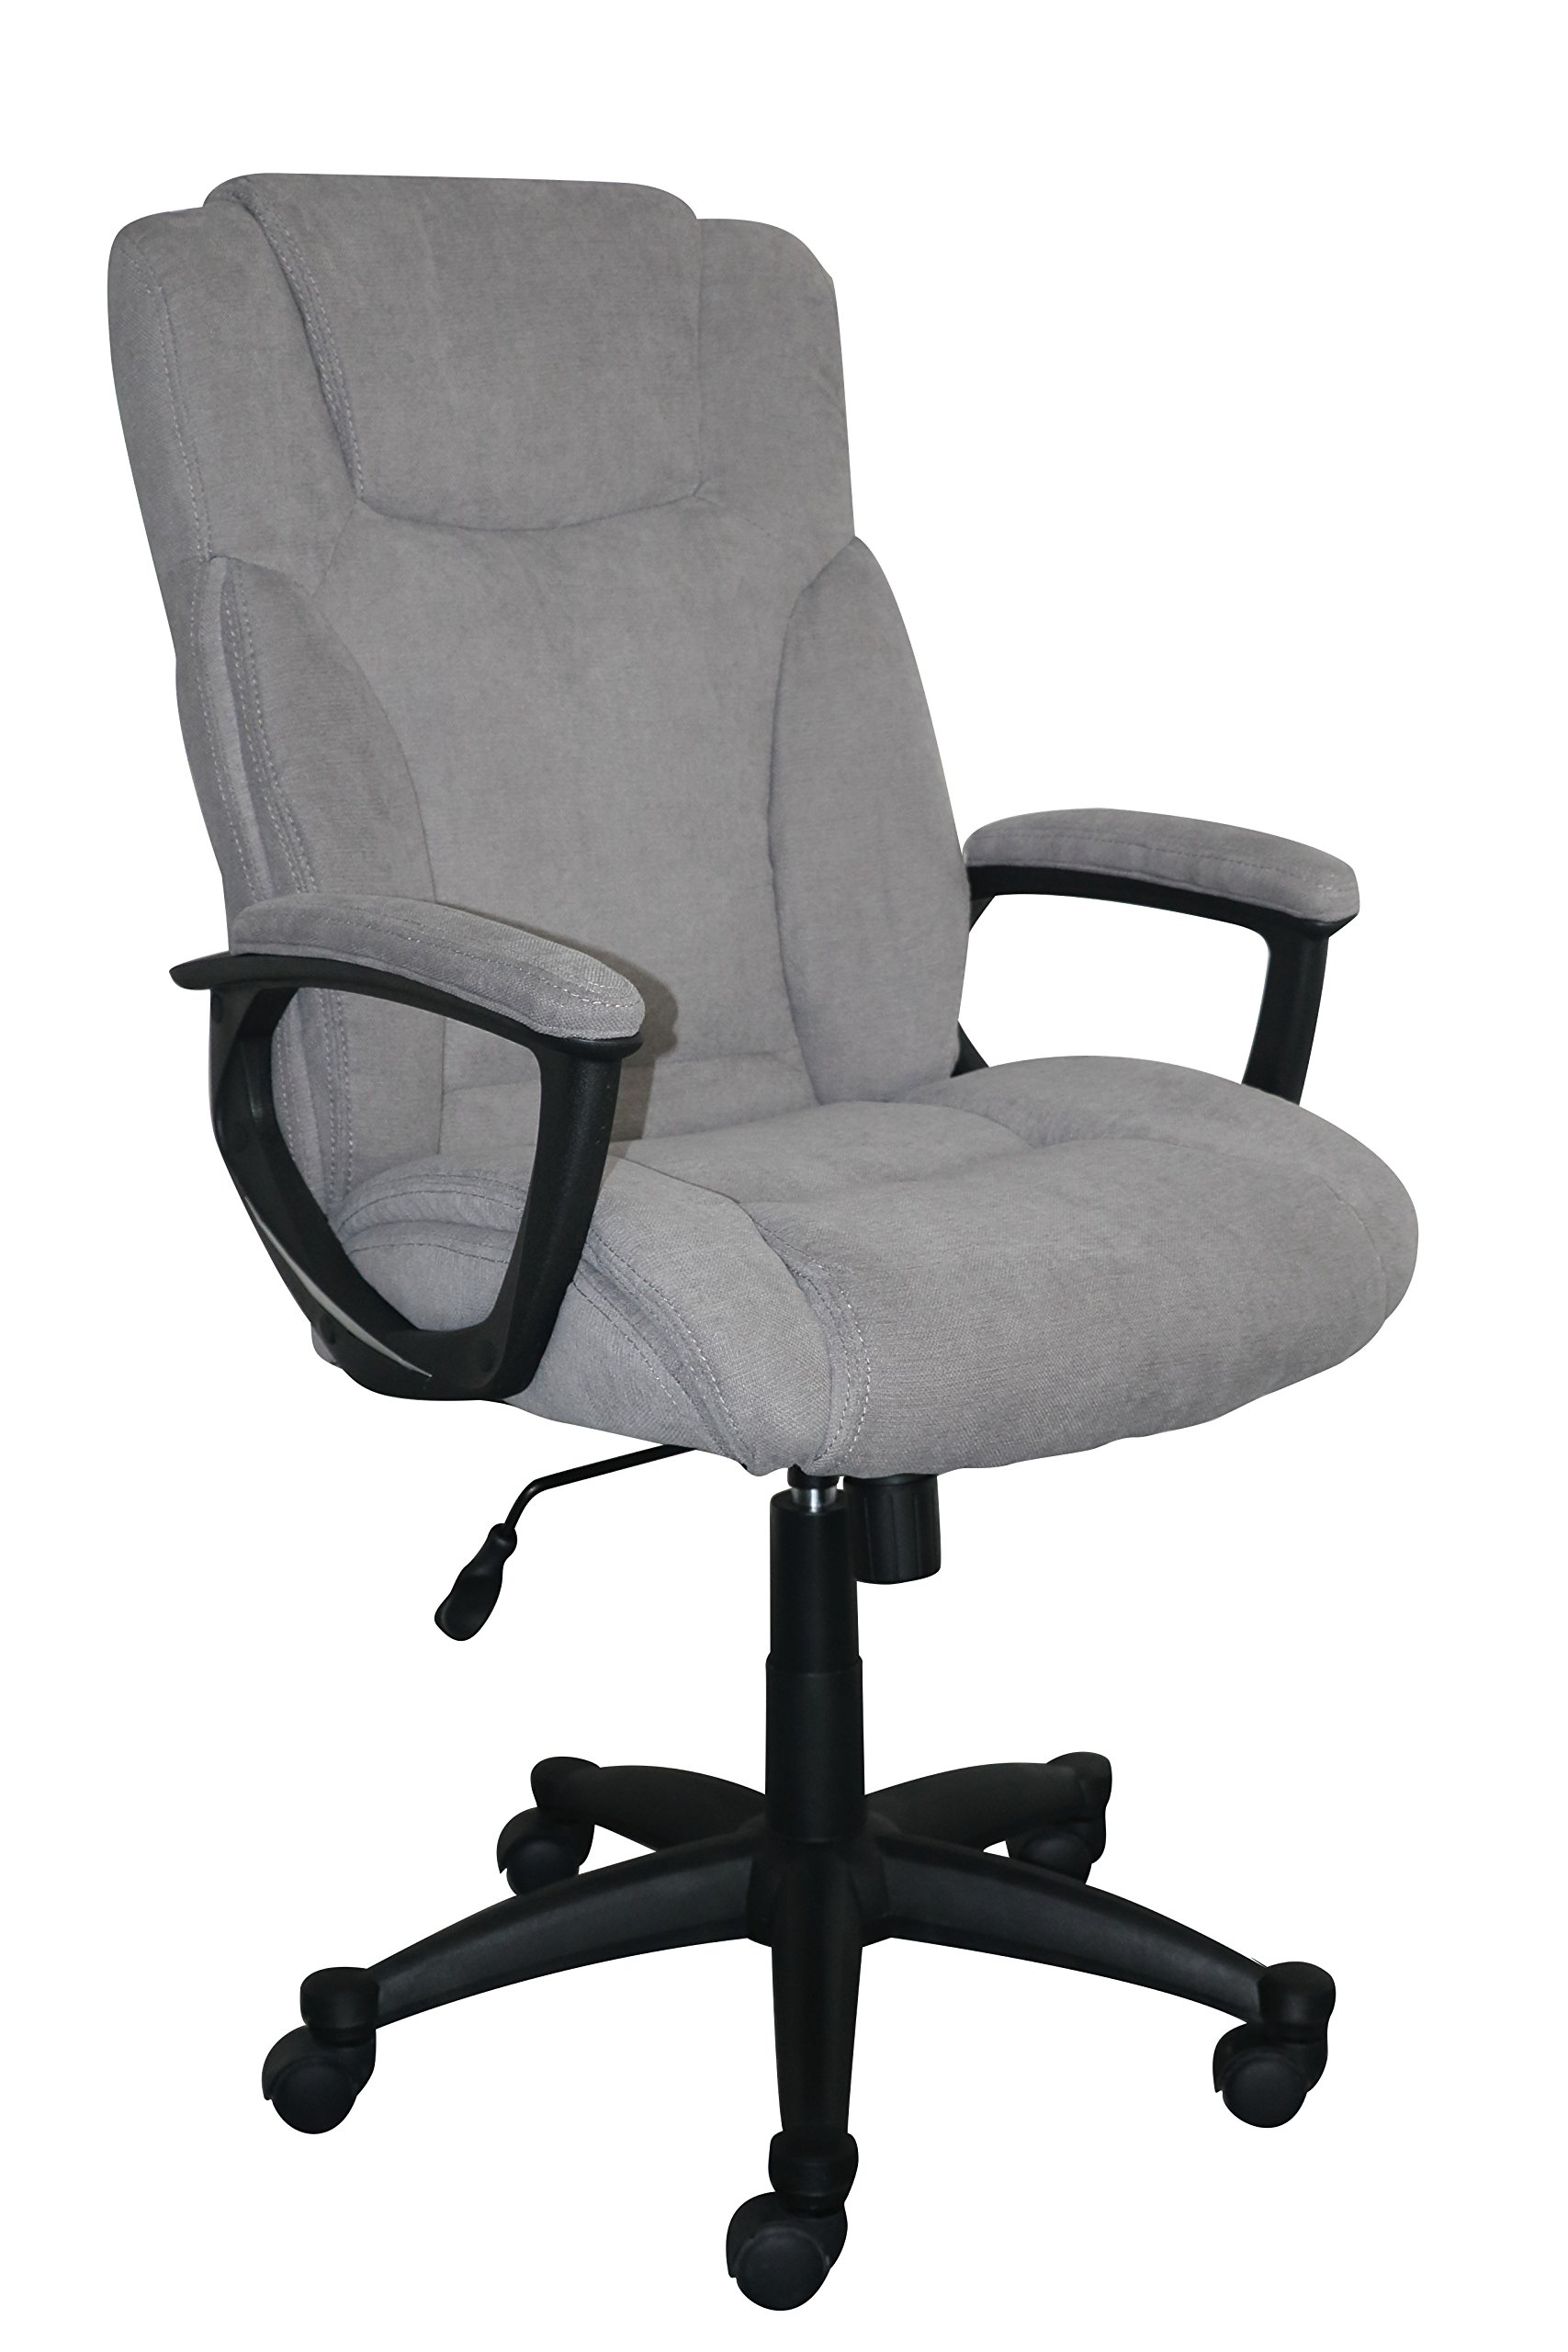 Serta Style Hannah II Office Chair, Microfiber, Gray